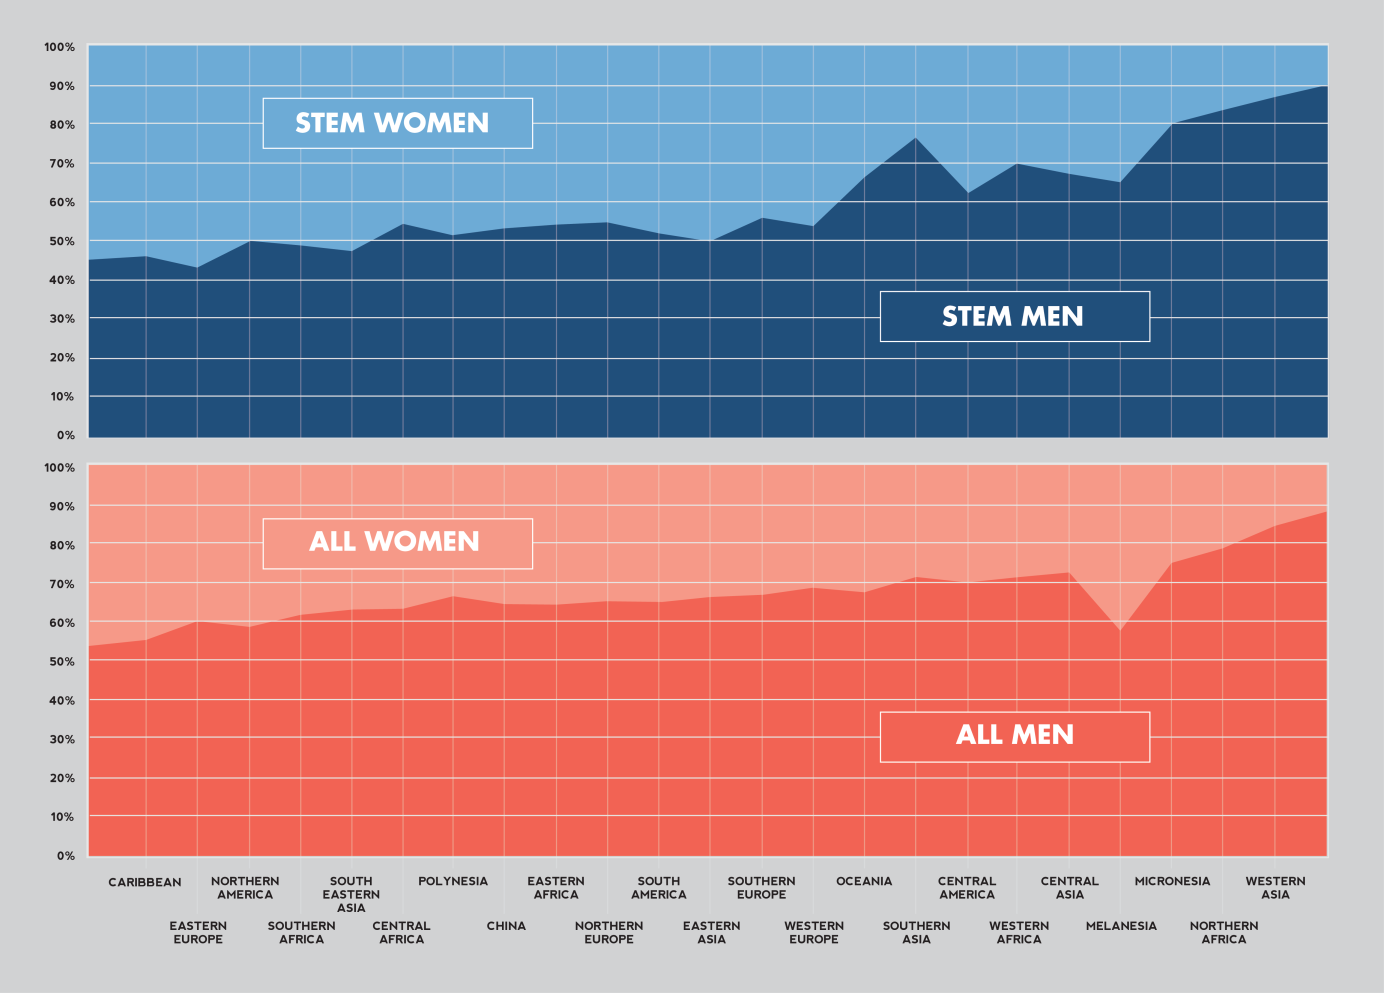 STEM STUDENTS BY GENDER How many male F & M students are in STEM fields in the United States compared to females?